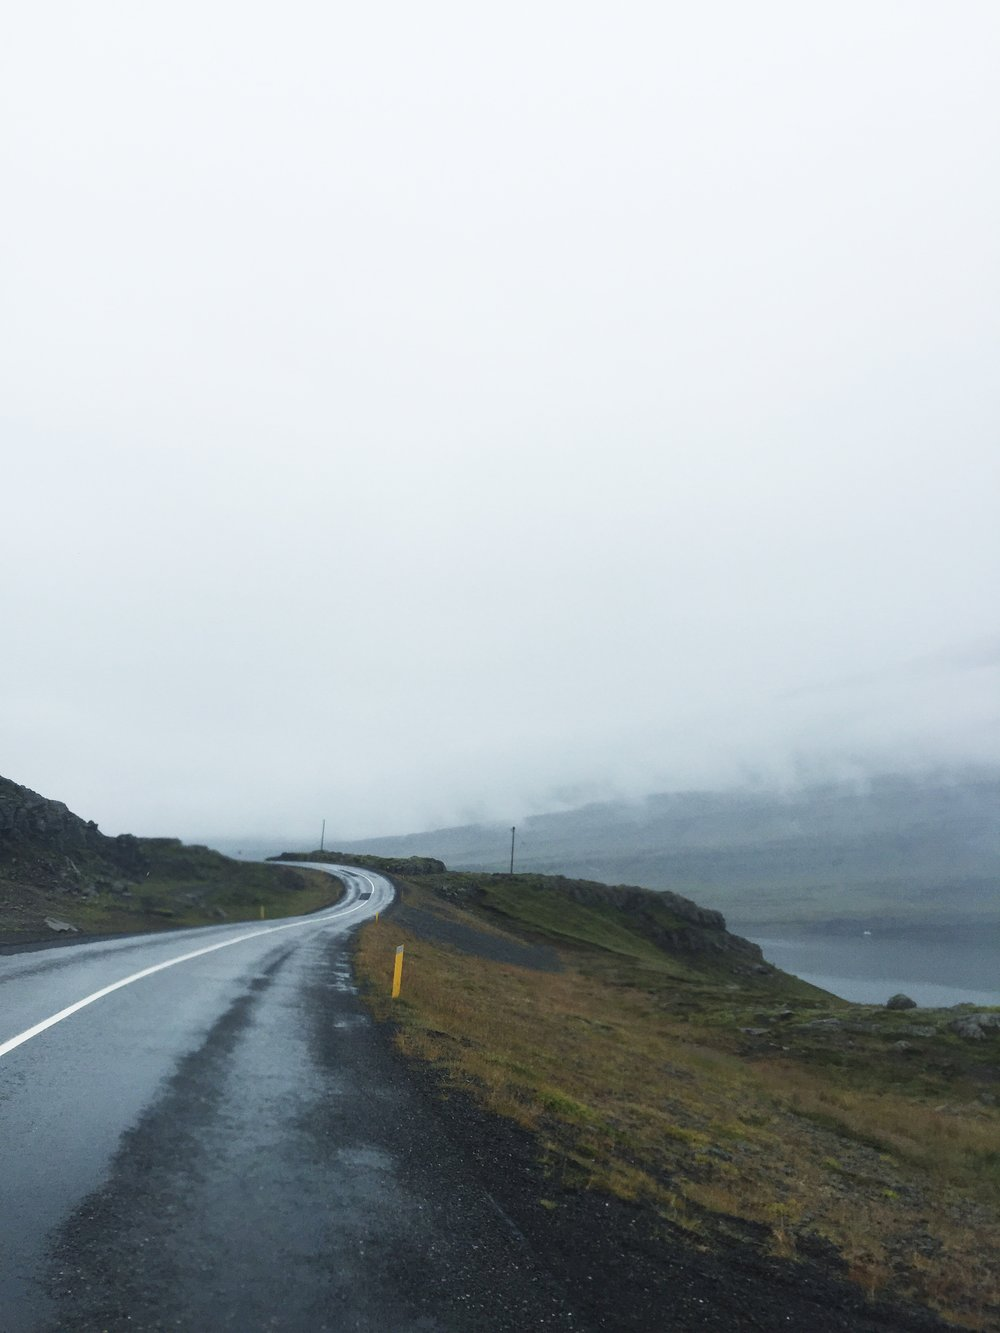 Copy of Low visibility on RTE 1, East Iceland